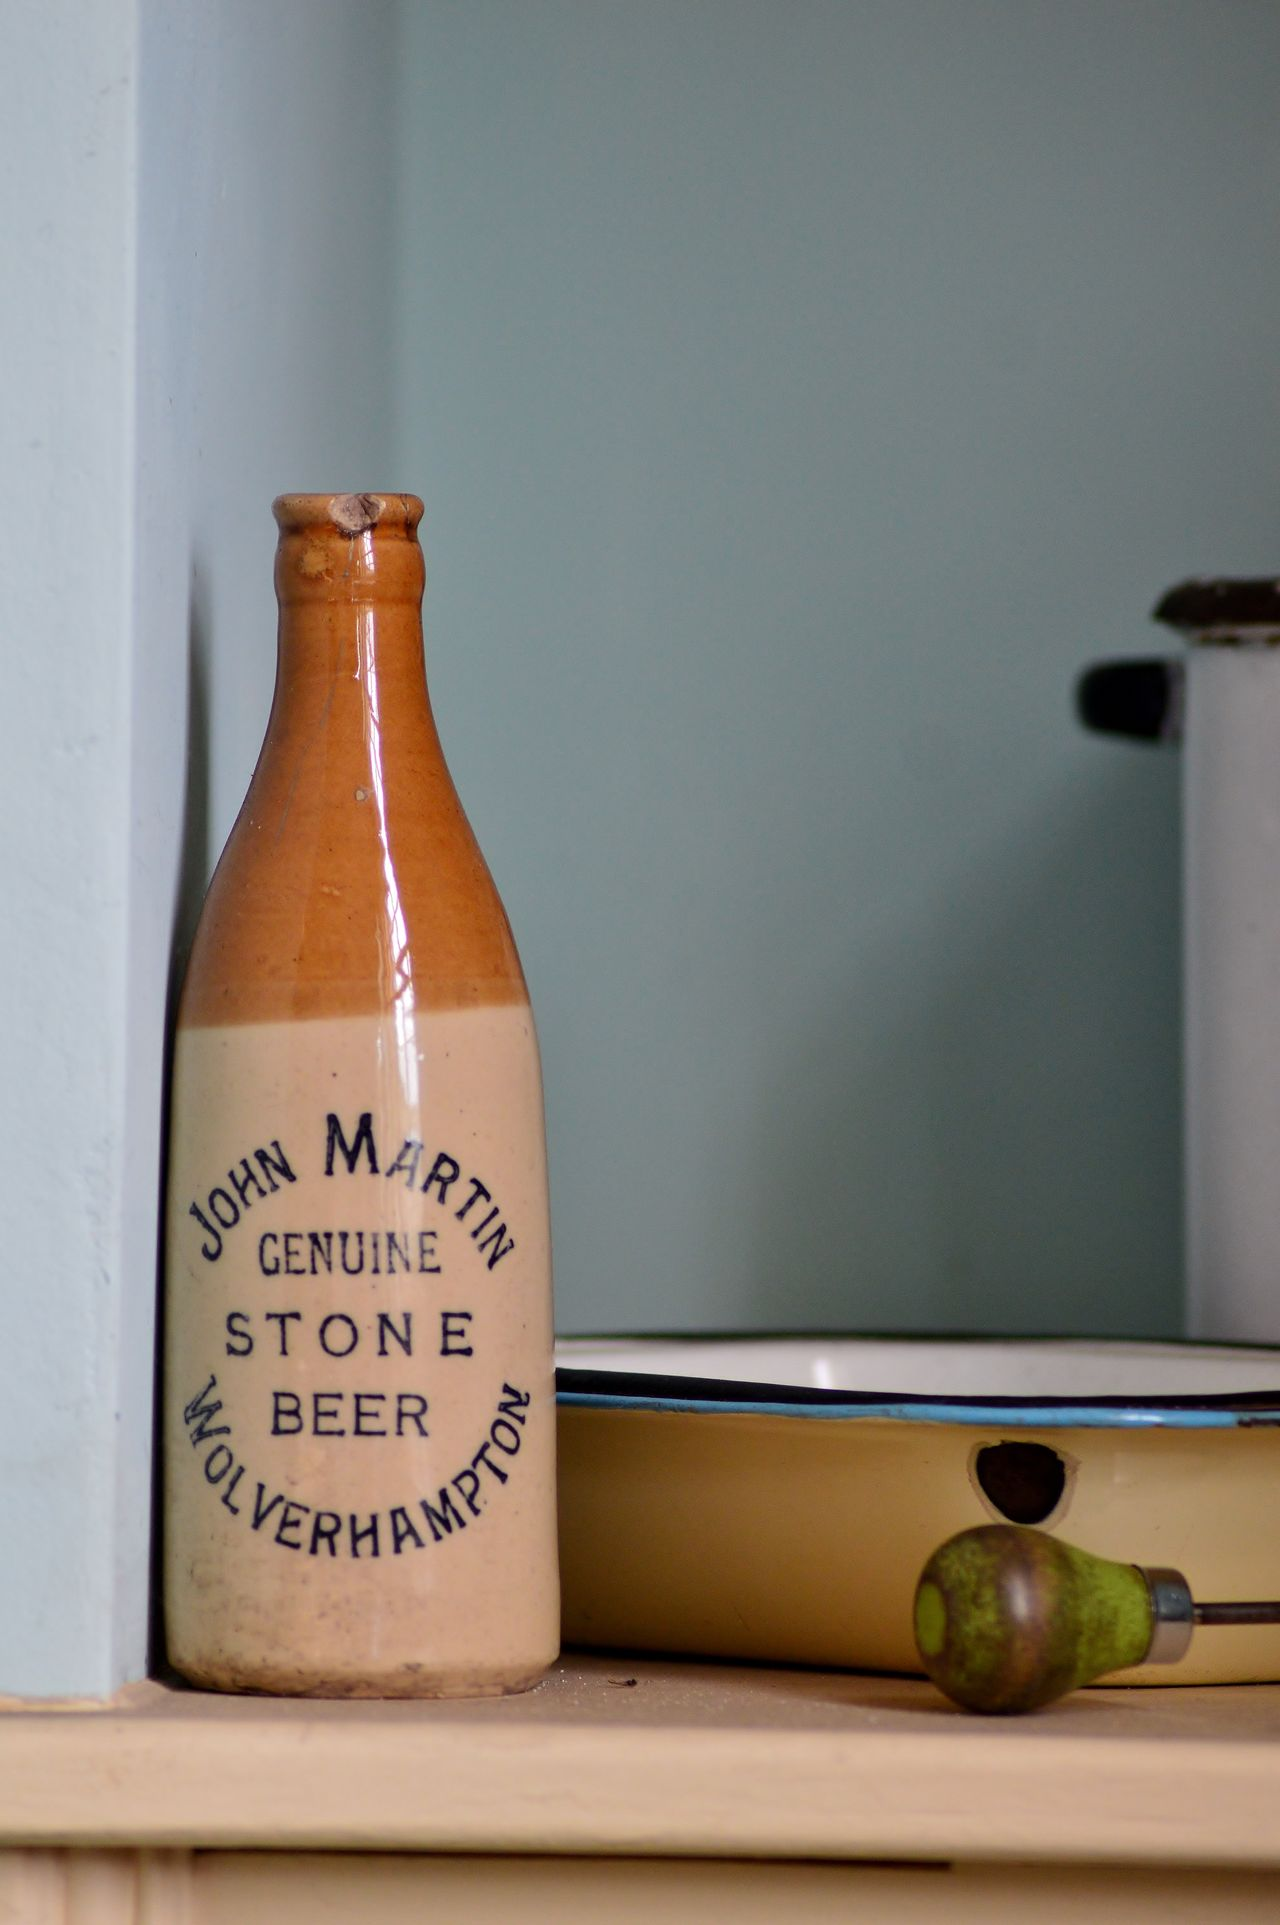 Beer Beer Time Blue Bottle Check This Out Cheers Follow4follow Hello World Hi Indoors  Nikon Nikon D3200 Old Bottles Old-fashioned Pastel Power Photography Shelf Simple Photography Simplicity Still Life Stone Beer Taking Photos Wolverhampton